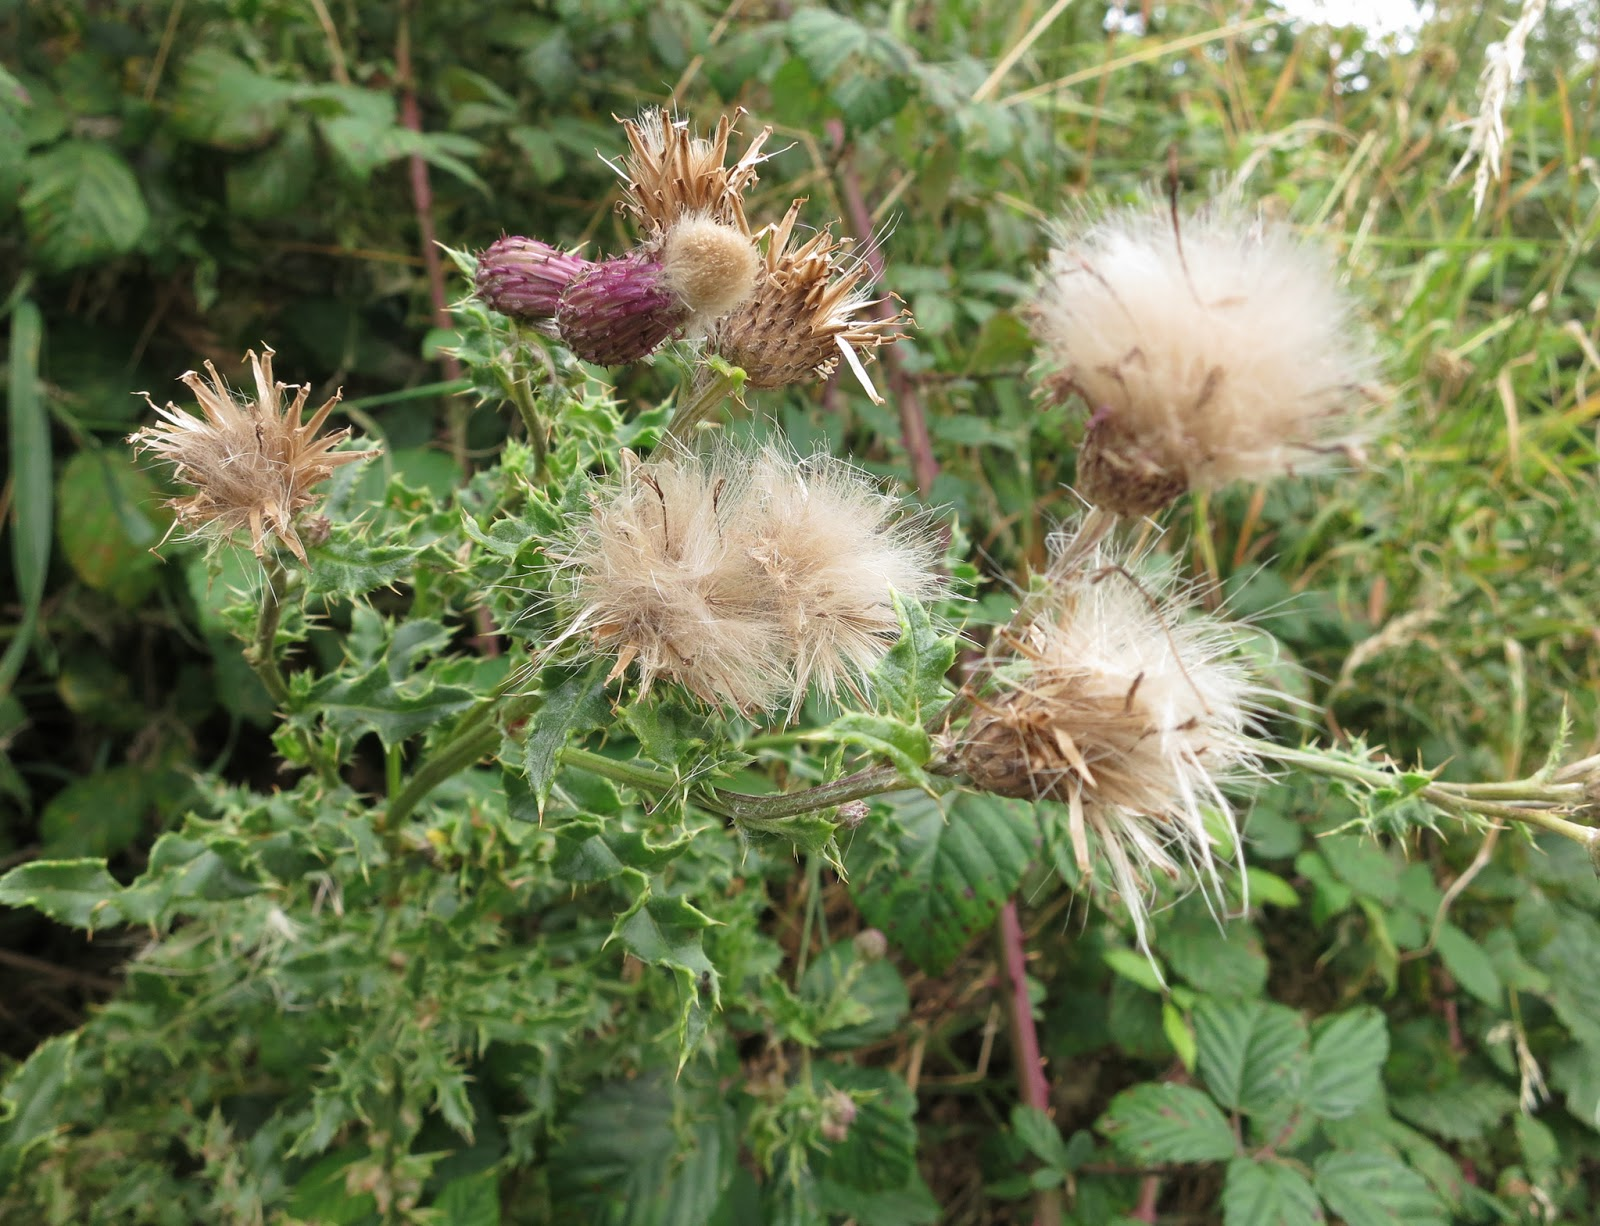 Thistle with flowers turning to seeds and leaves looking like holly leaves